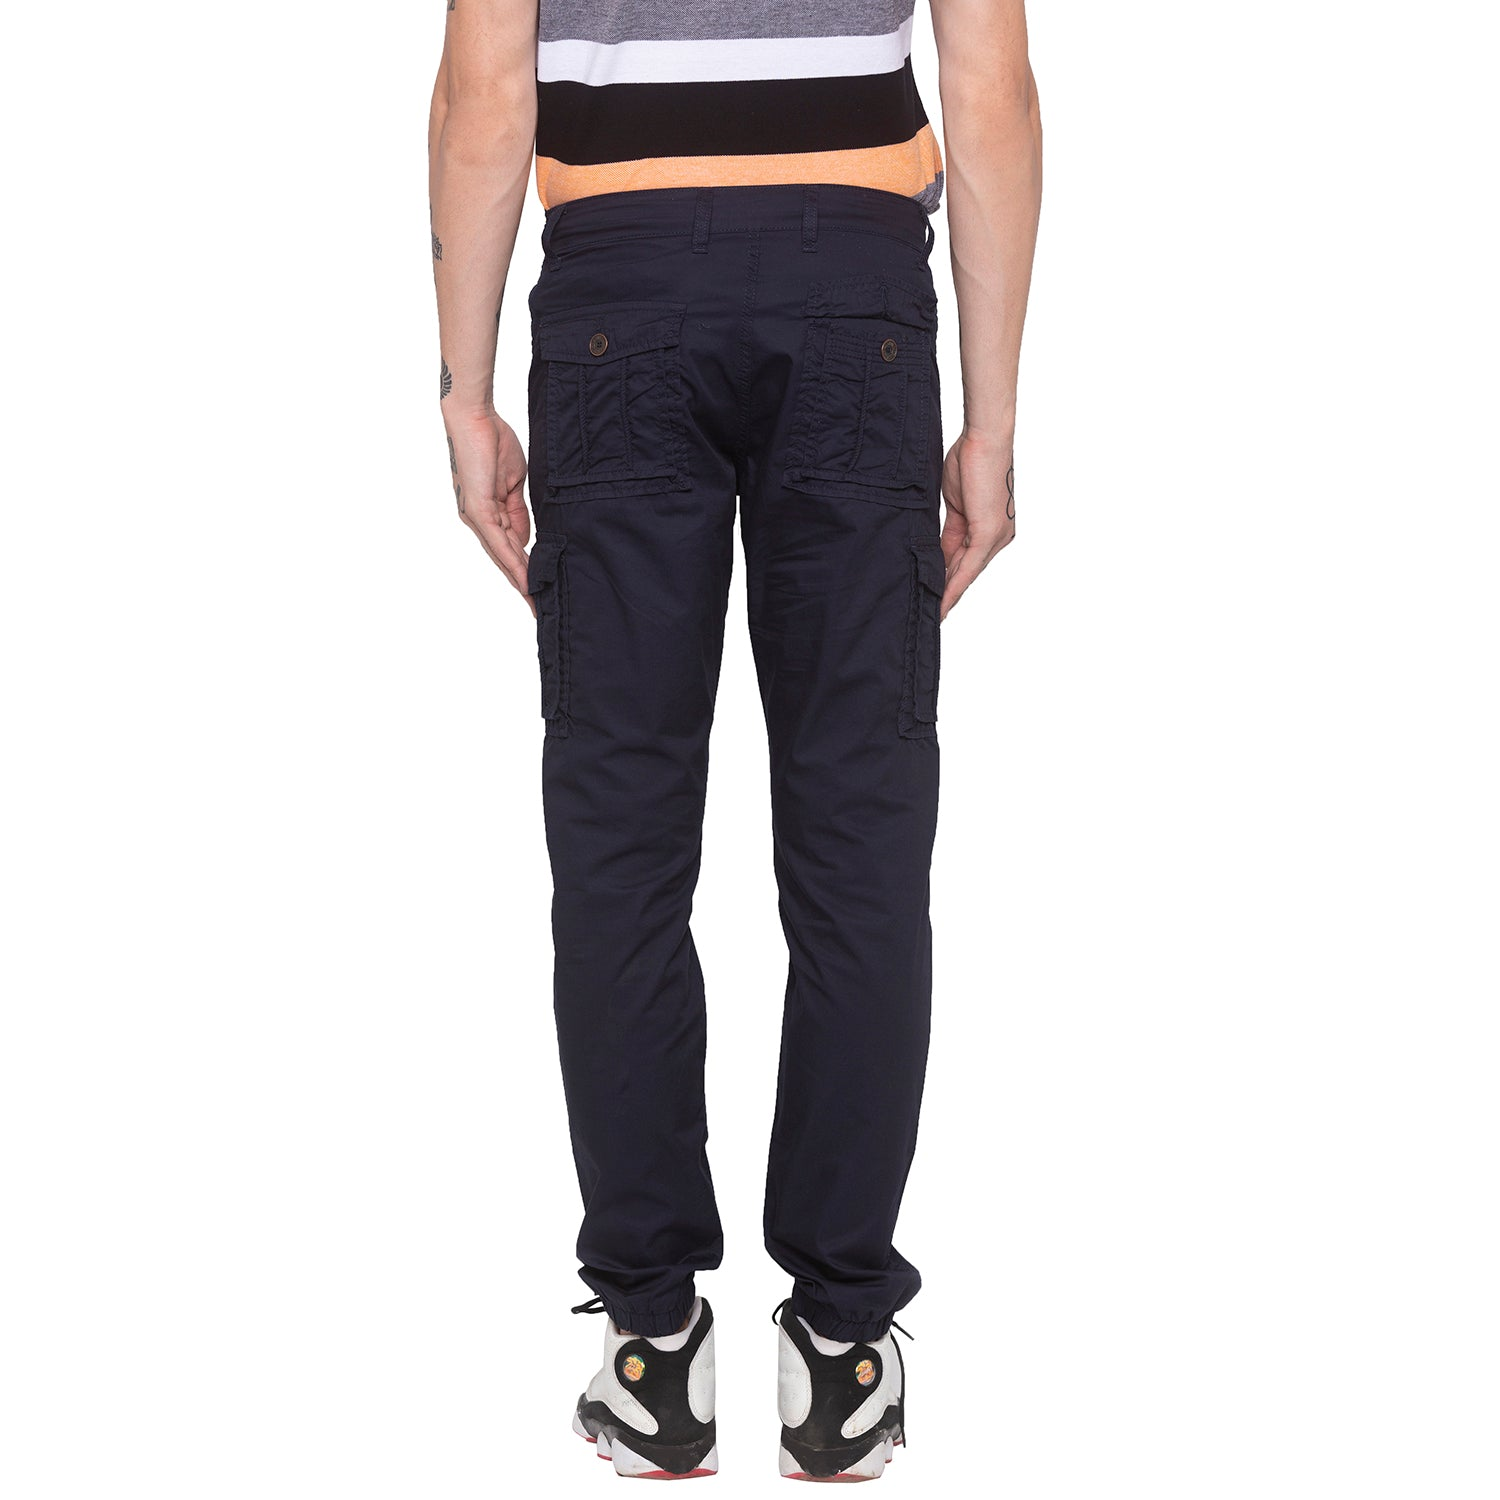 Navy Blue Cargo Pants-3